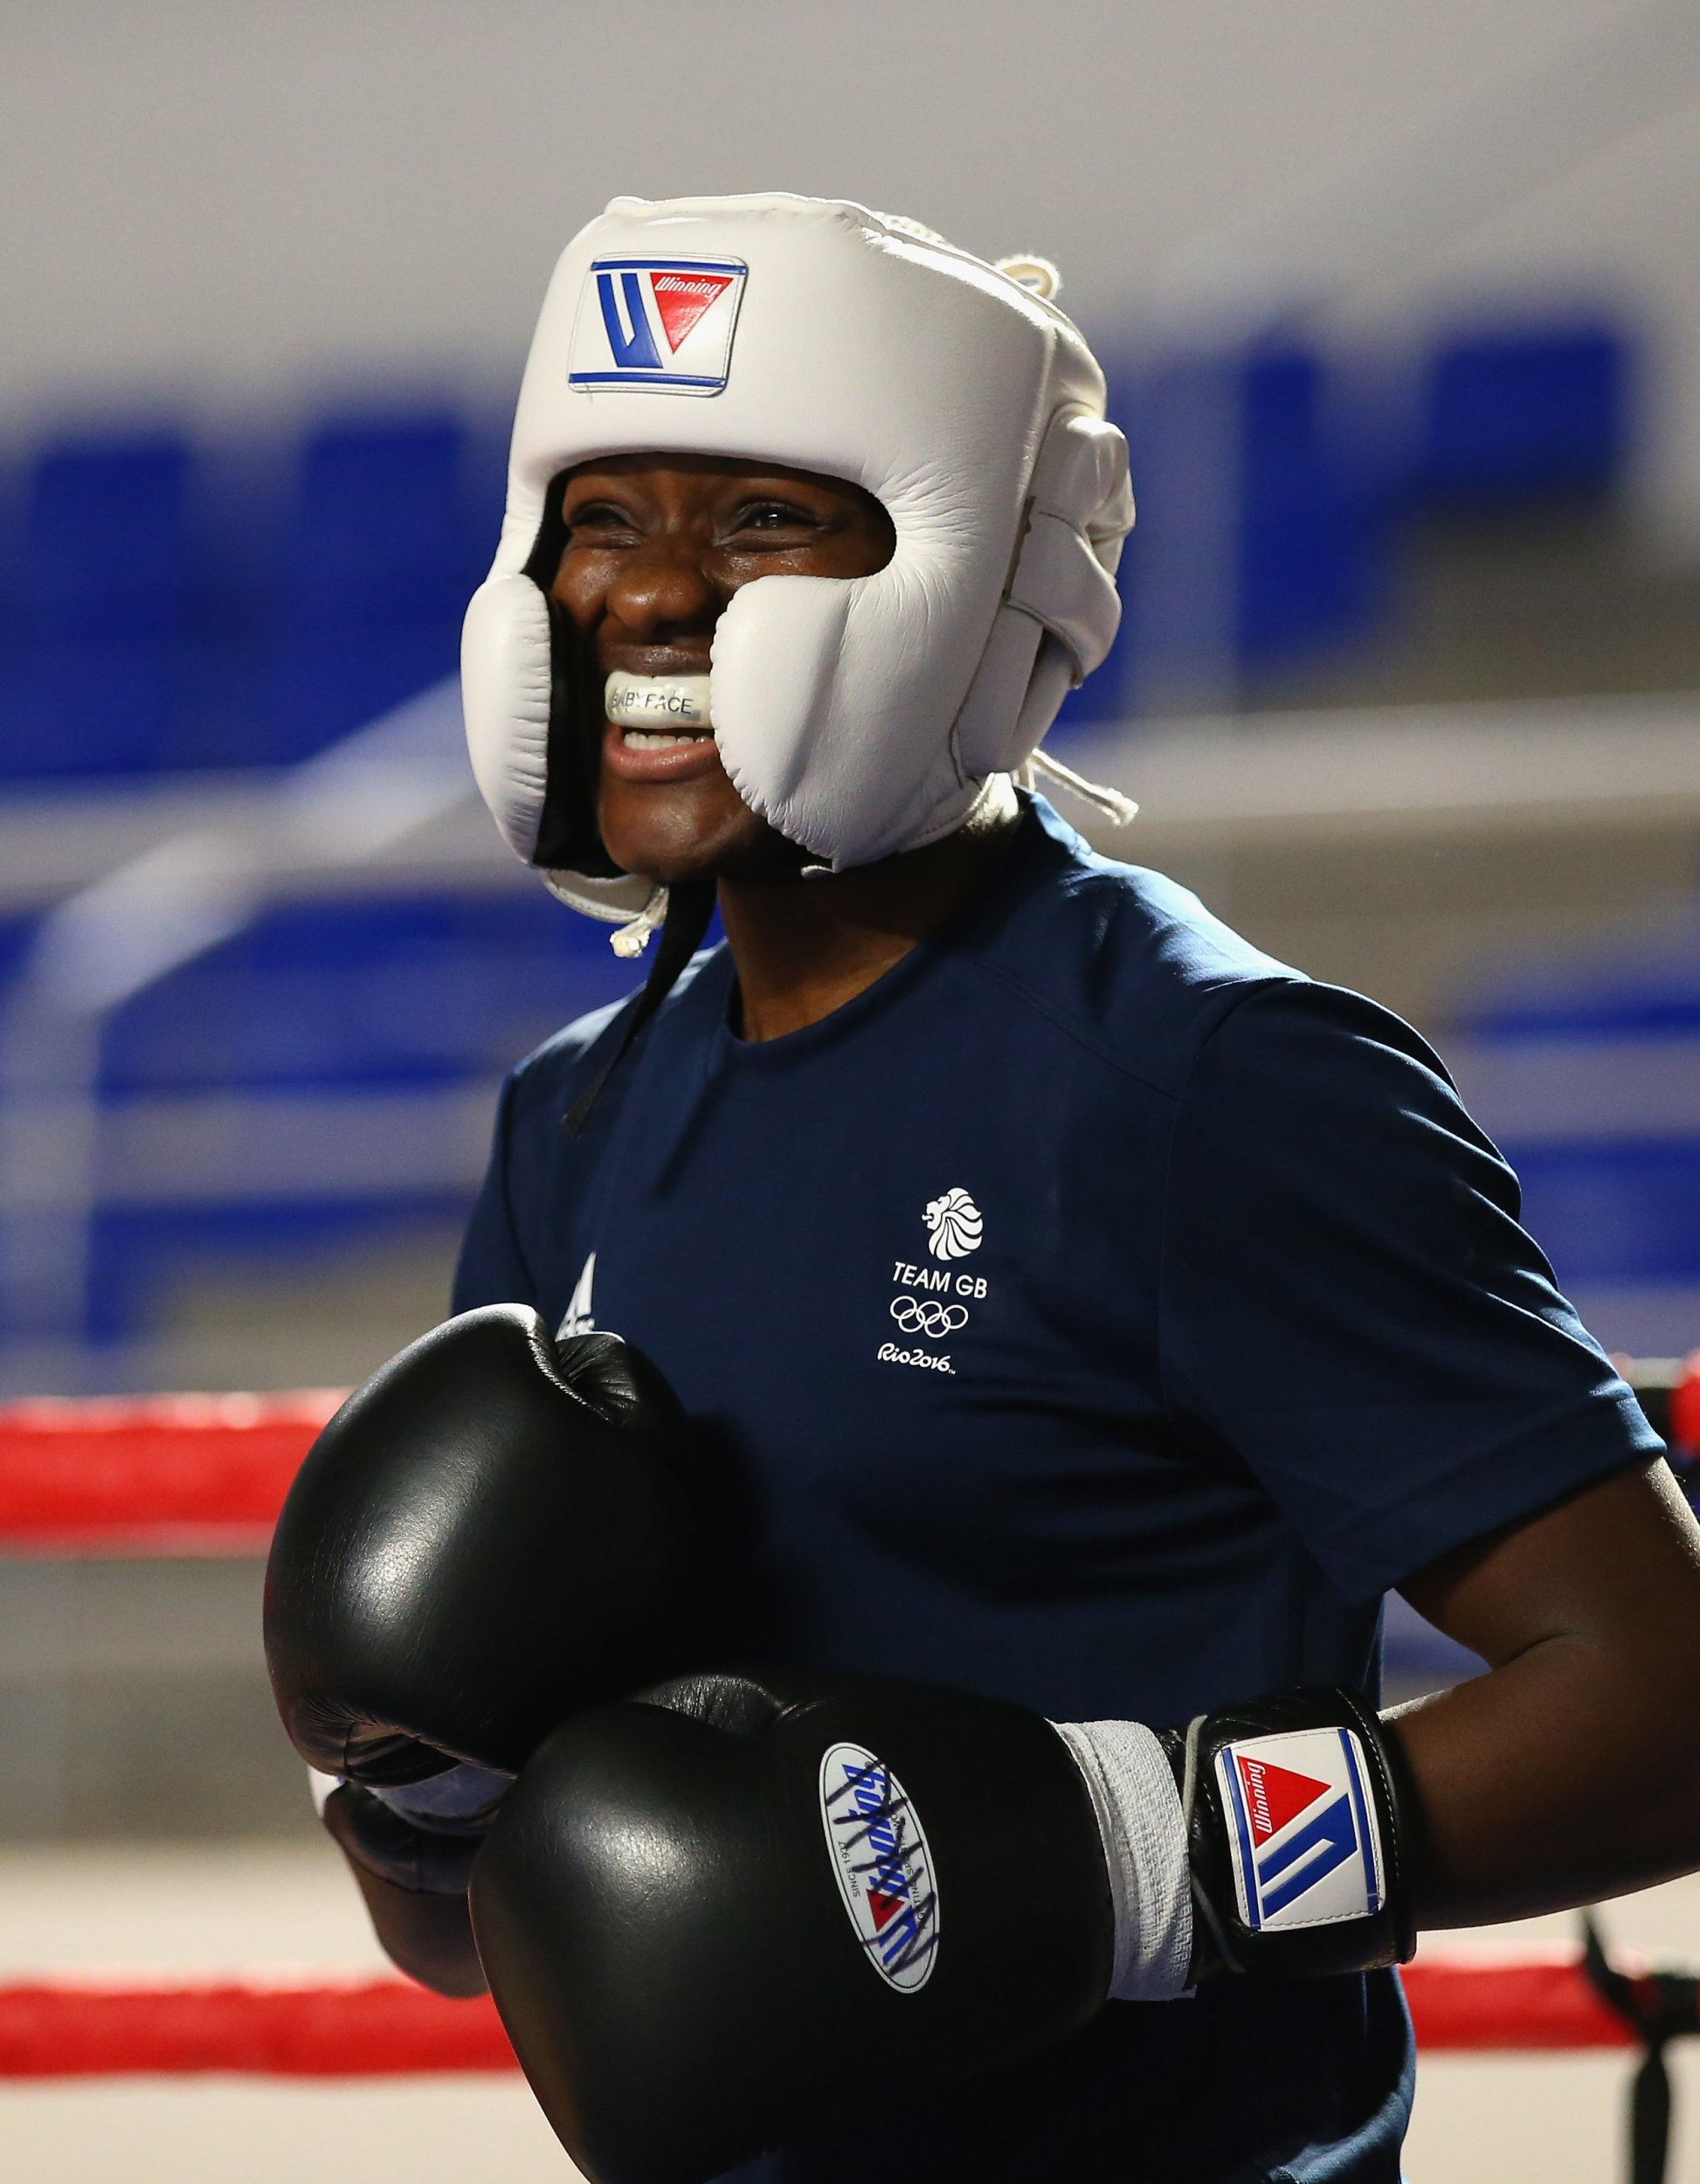 When is Nicola Adams' boxing semi-final at Rio 2016 Olympics? Next fight time, date, TV and opponent